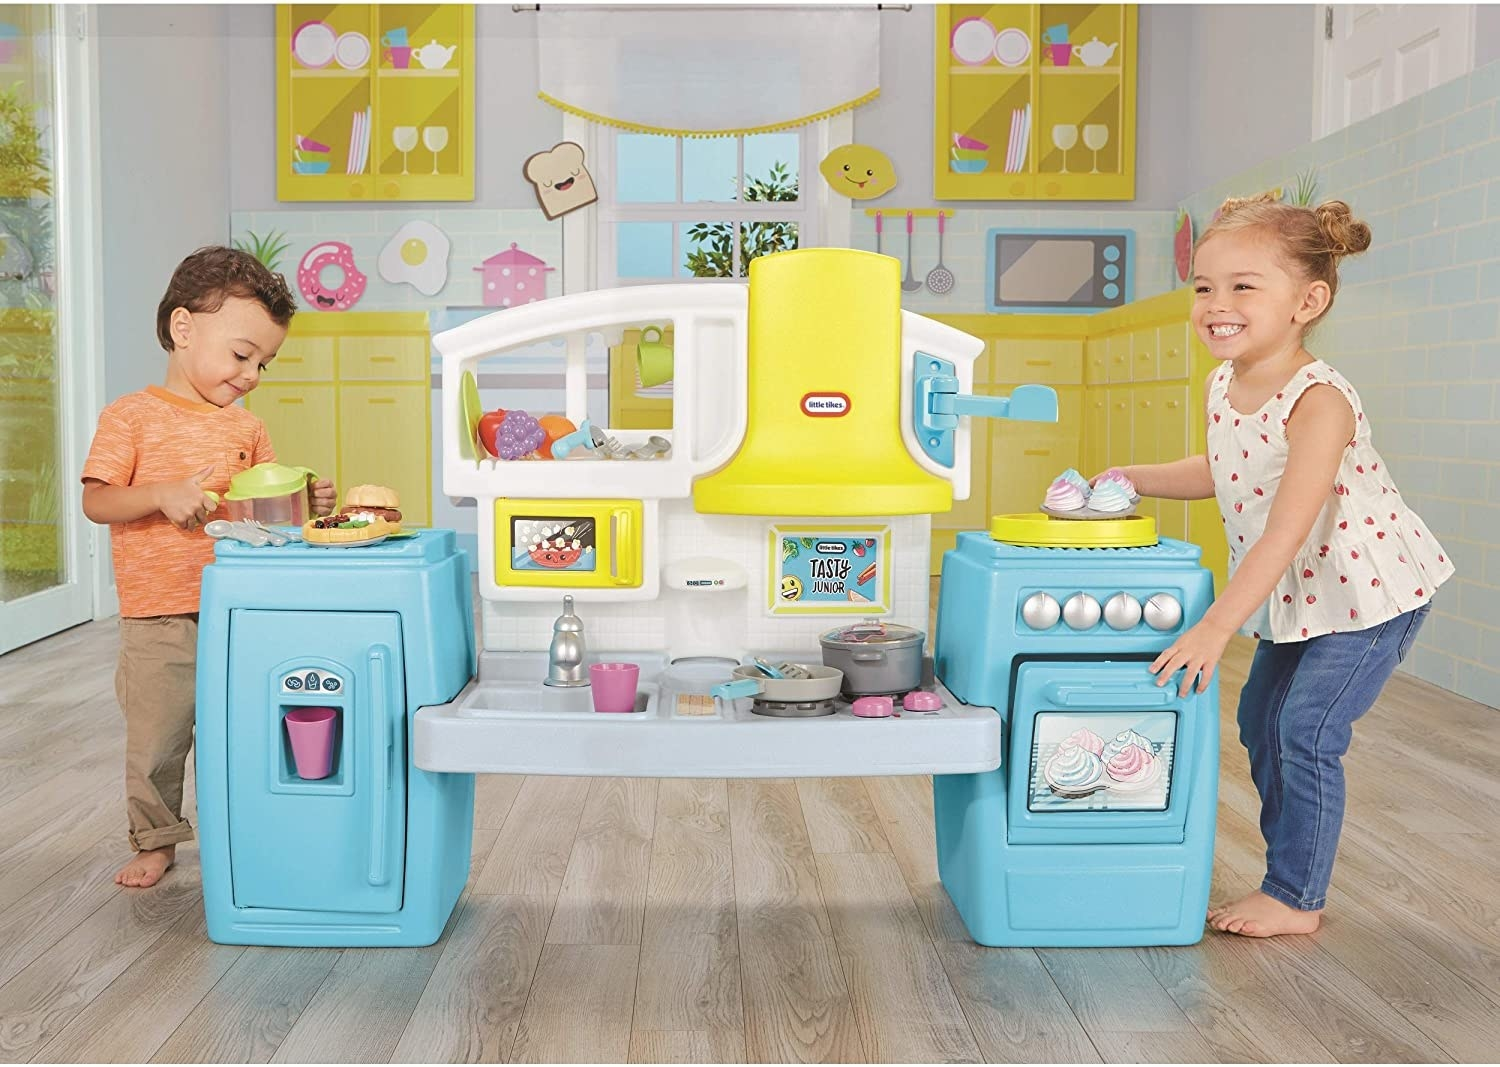 Model children playing with the mini kitchen